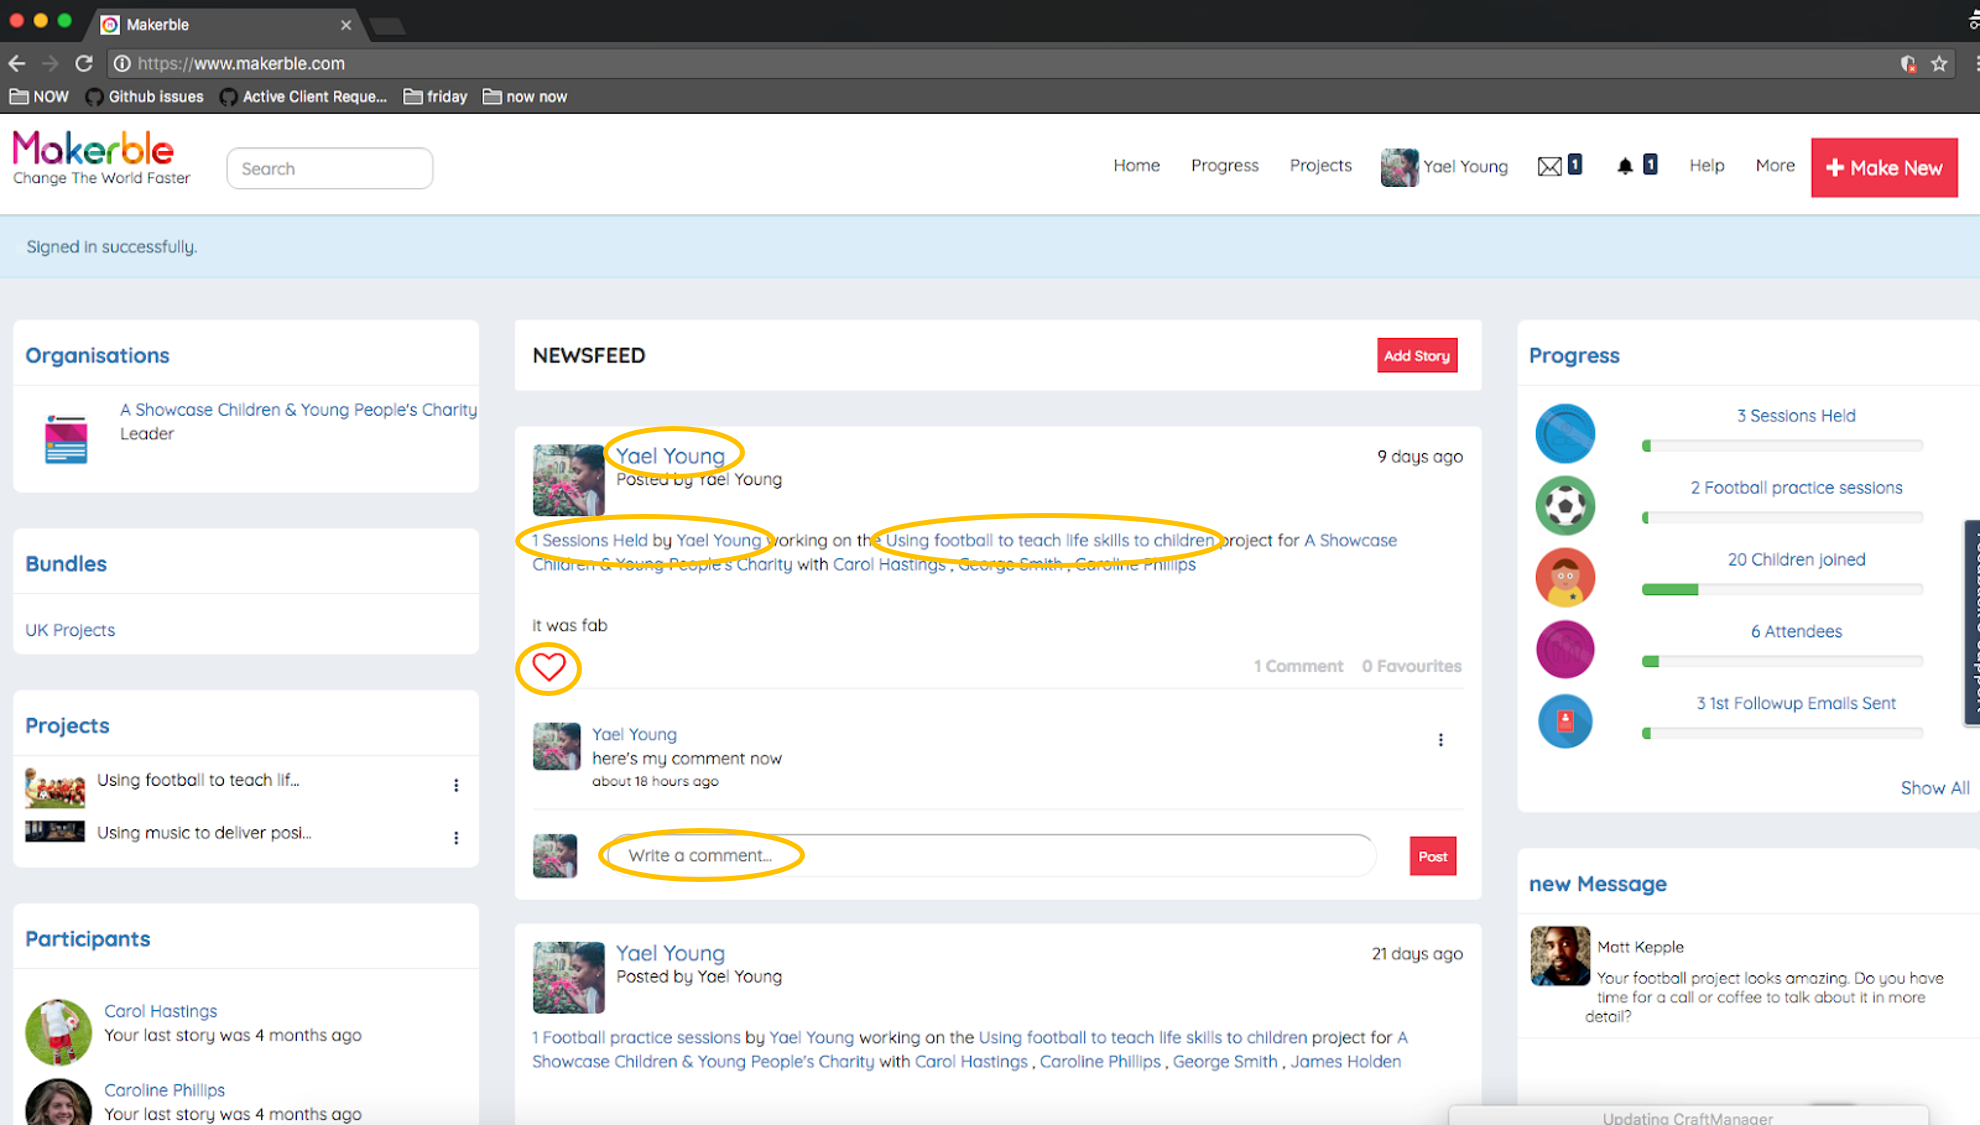 - Your Newsfeed shows you the latest updates on what you, your team and the people and projects you follow have been up to. As circled, if you click...In the name of the author of that story, it will take you to that Person's ProfileOn one of the metrics on your Newsfeed, it will take you to that Story's PageIn the name of the project, it will take you to that Project's PageYou can favourite a story by clicking the heart highlighted hereYou can comment on a story in the comment box and then clicking 'Post'